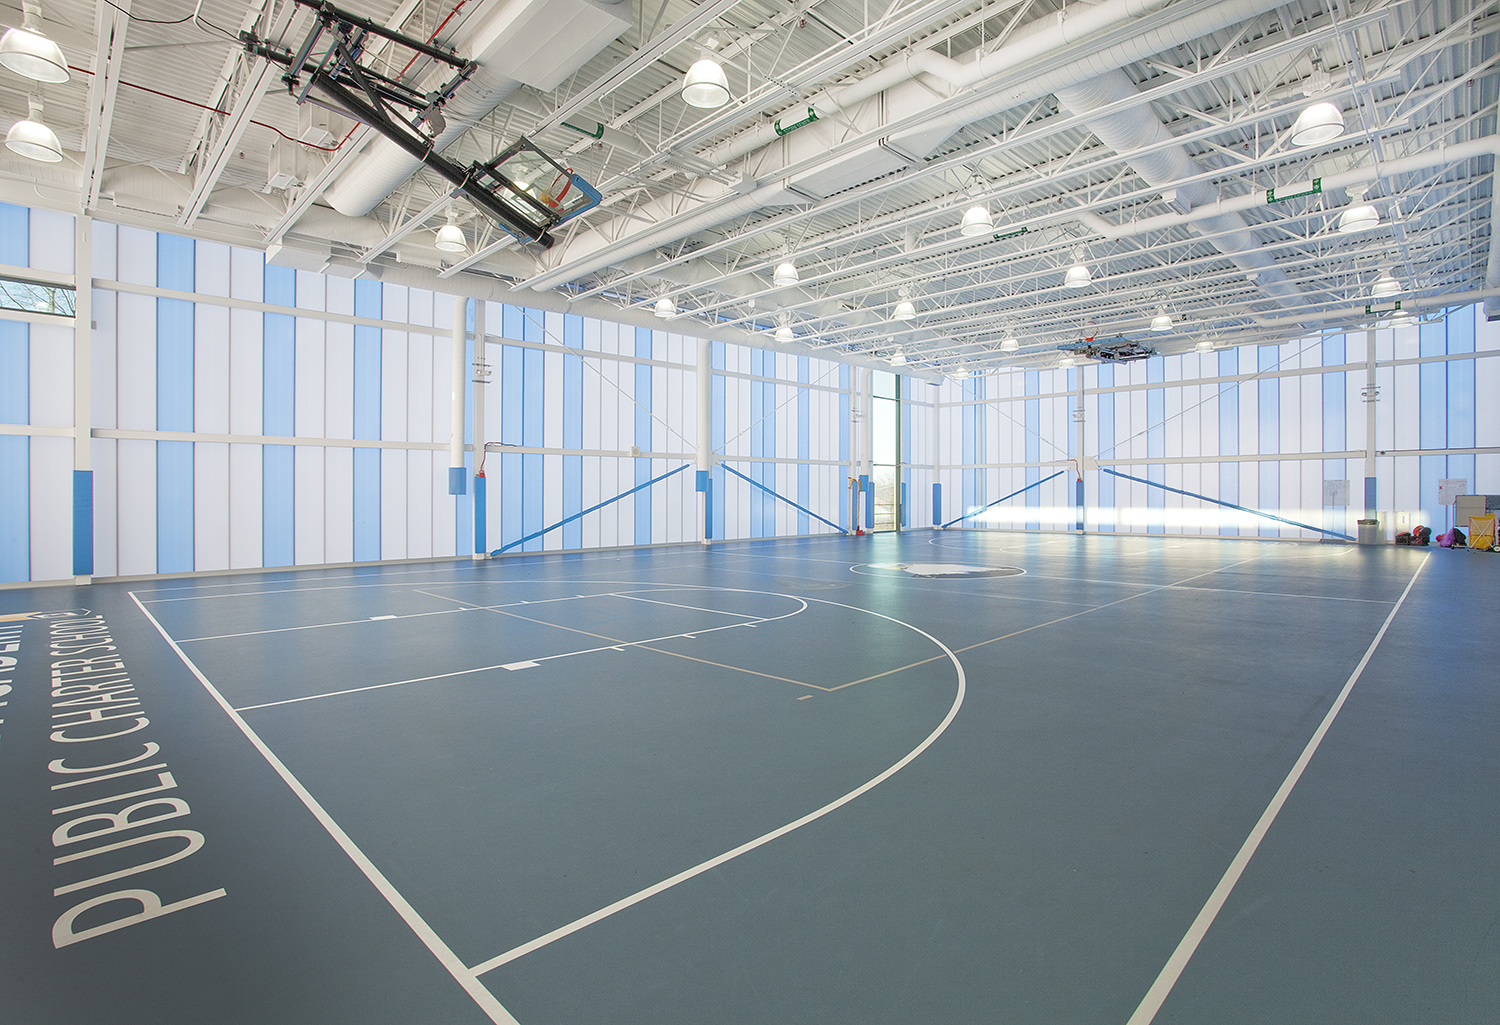 CPI Daylightings BiColor UniQuad creates a glarefree seamless and secure building envelope